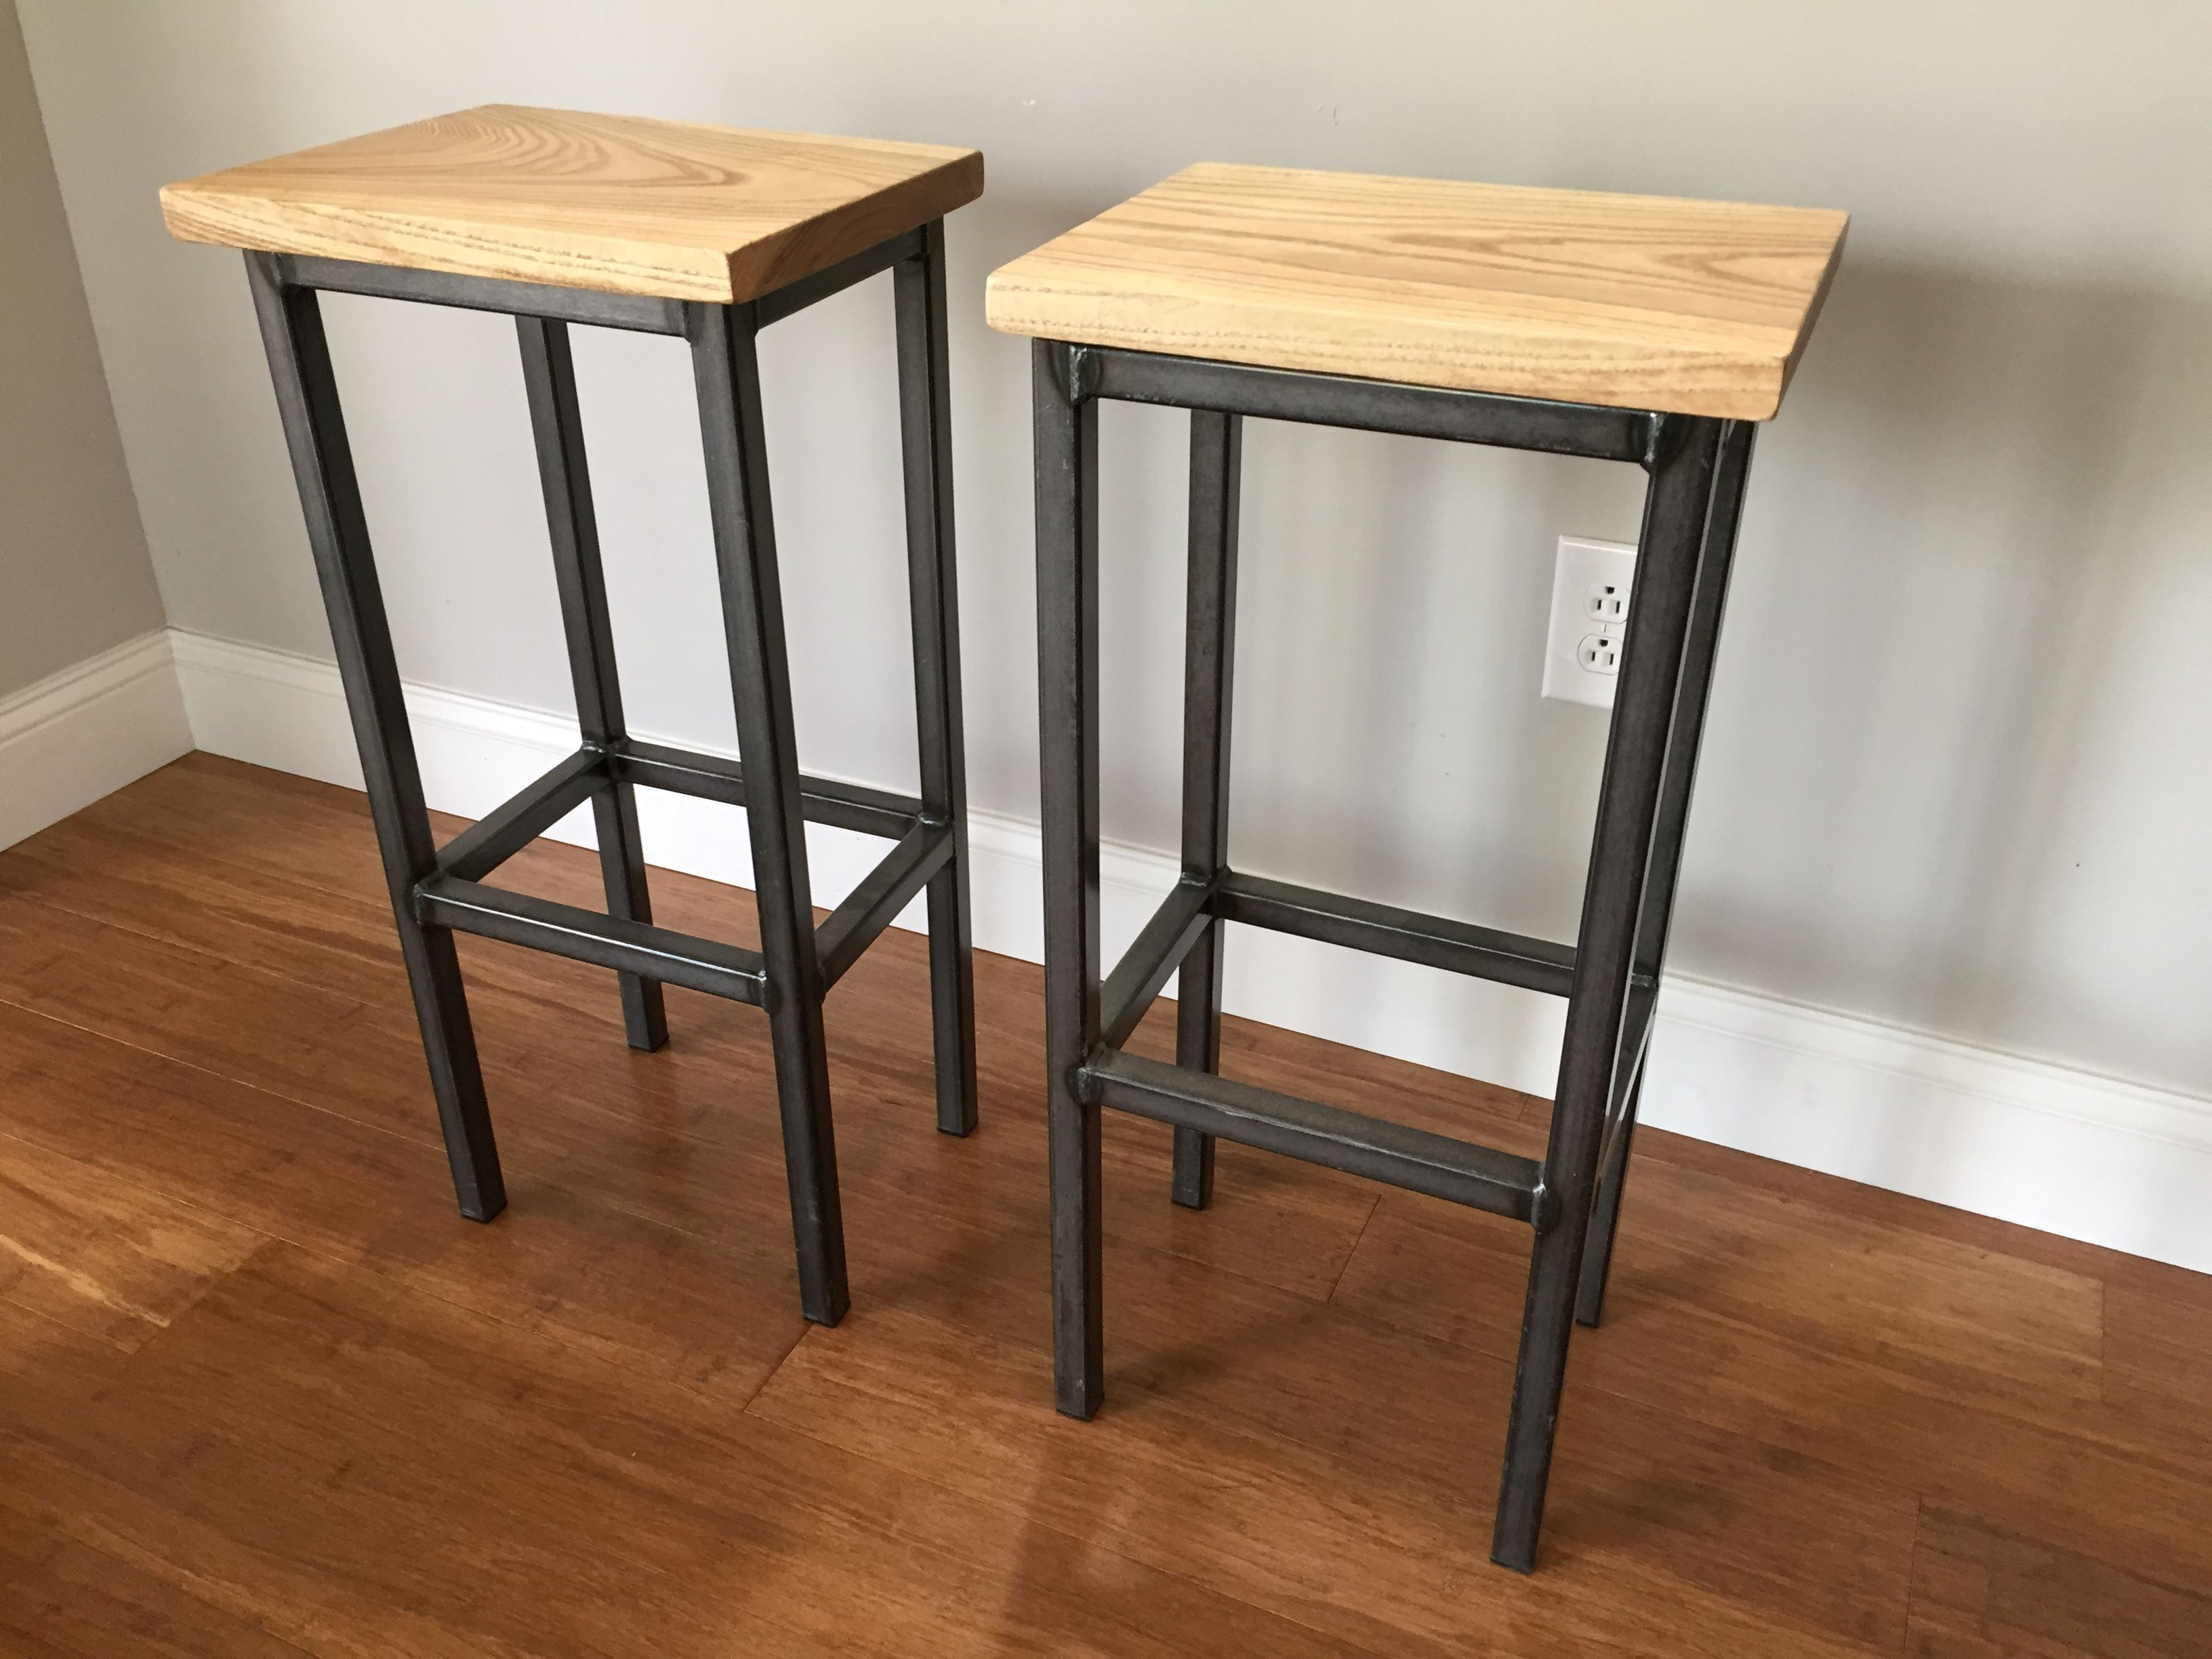 Hand Crafted Black Ash Wood Bar Stools W/Steel Frame - Handmade In ...